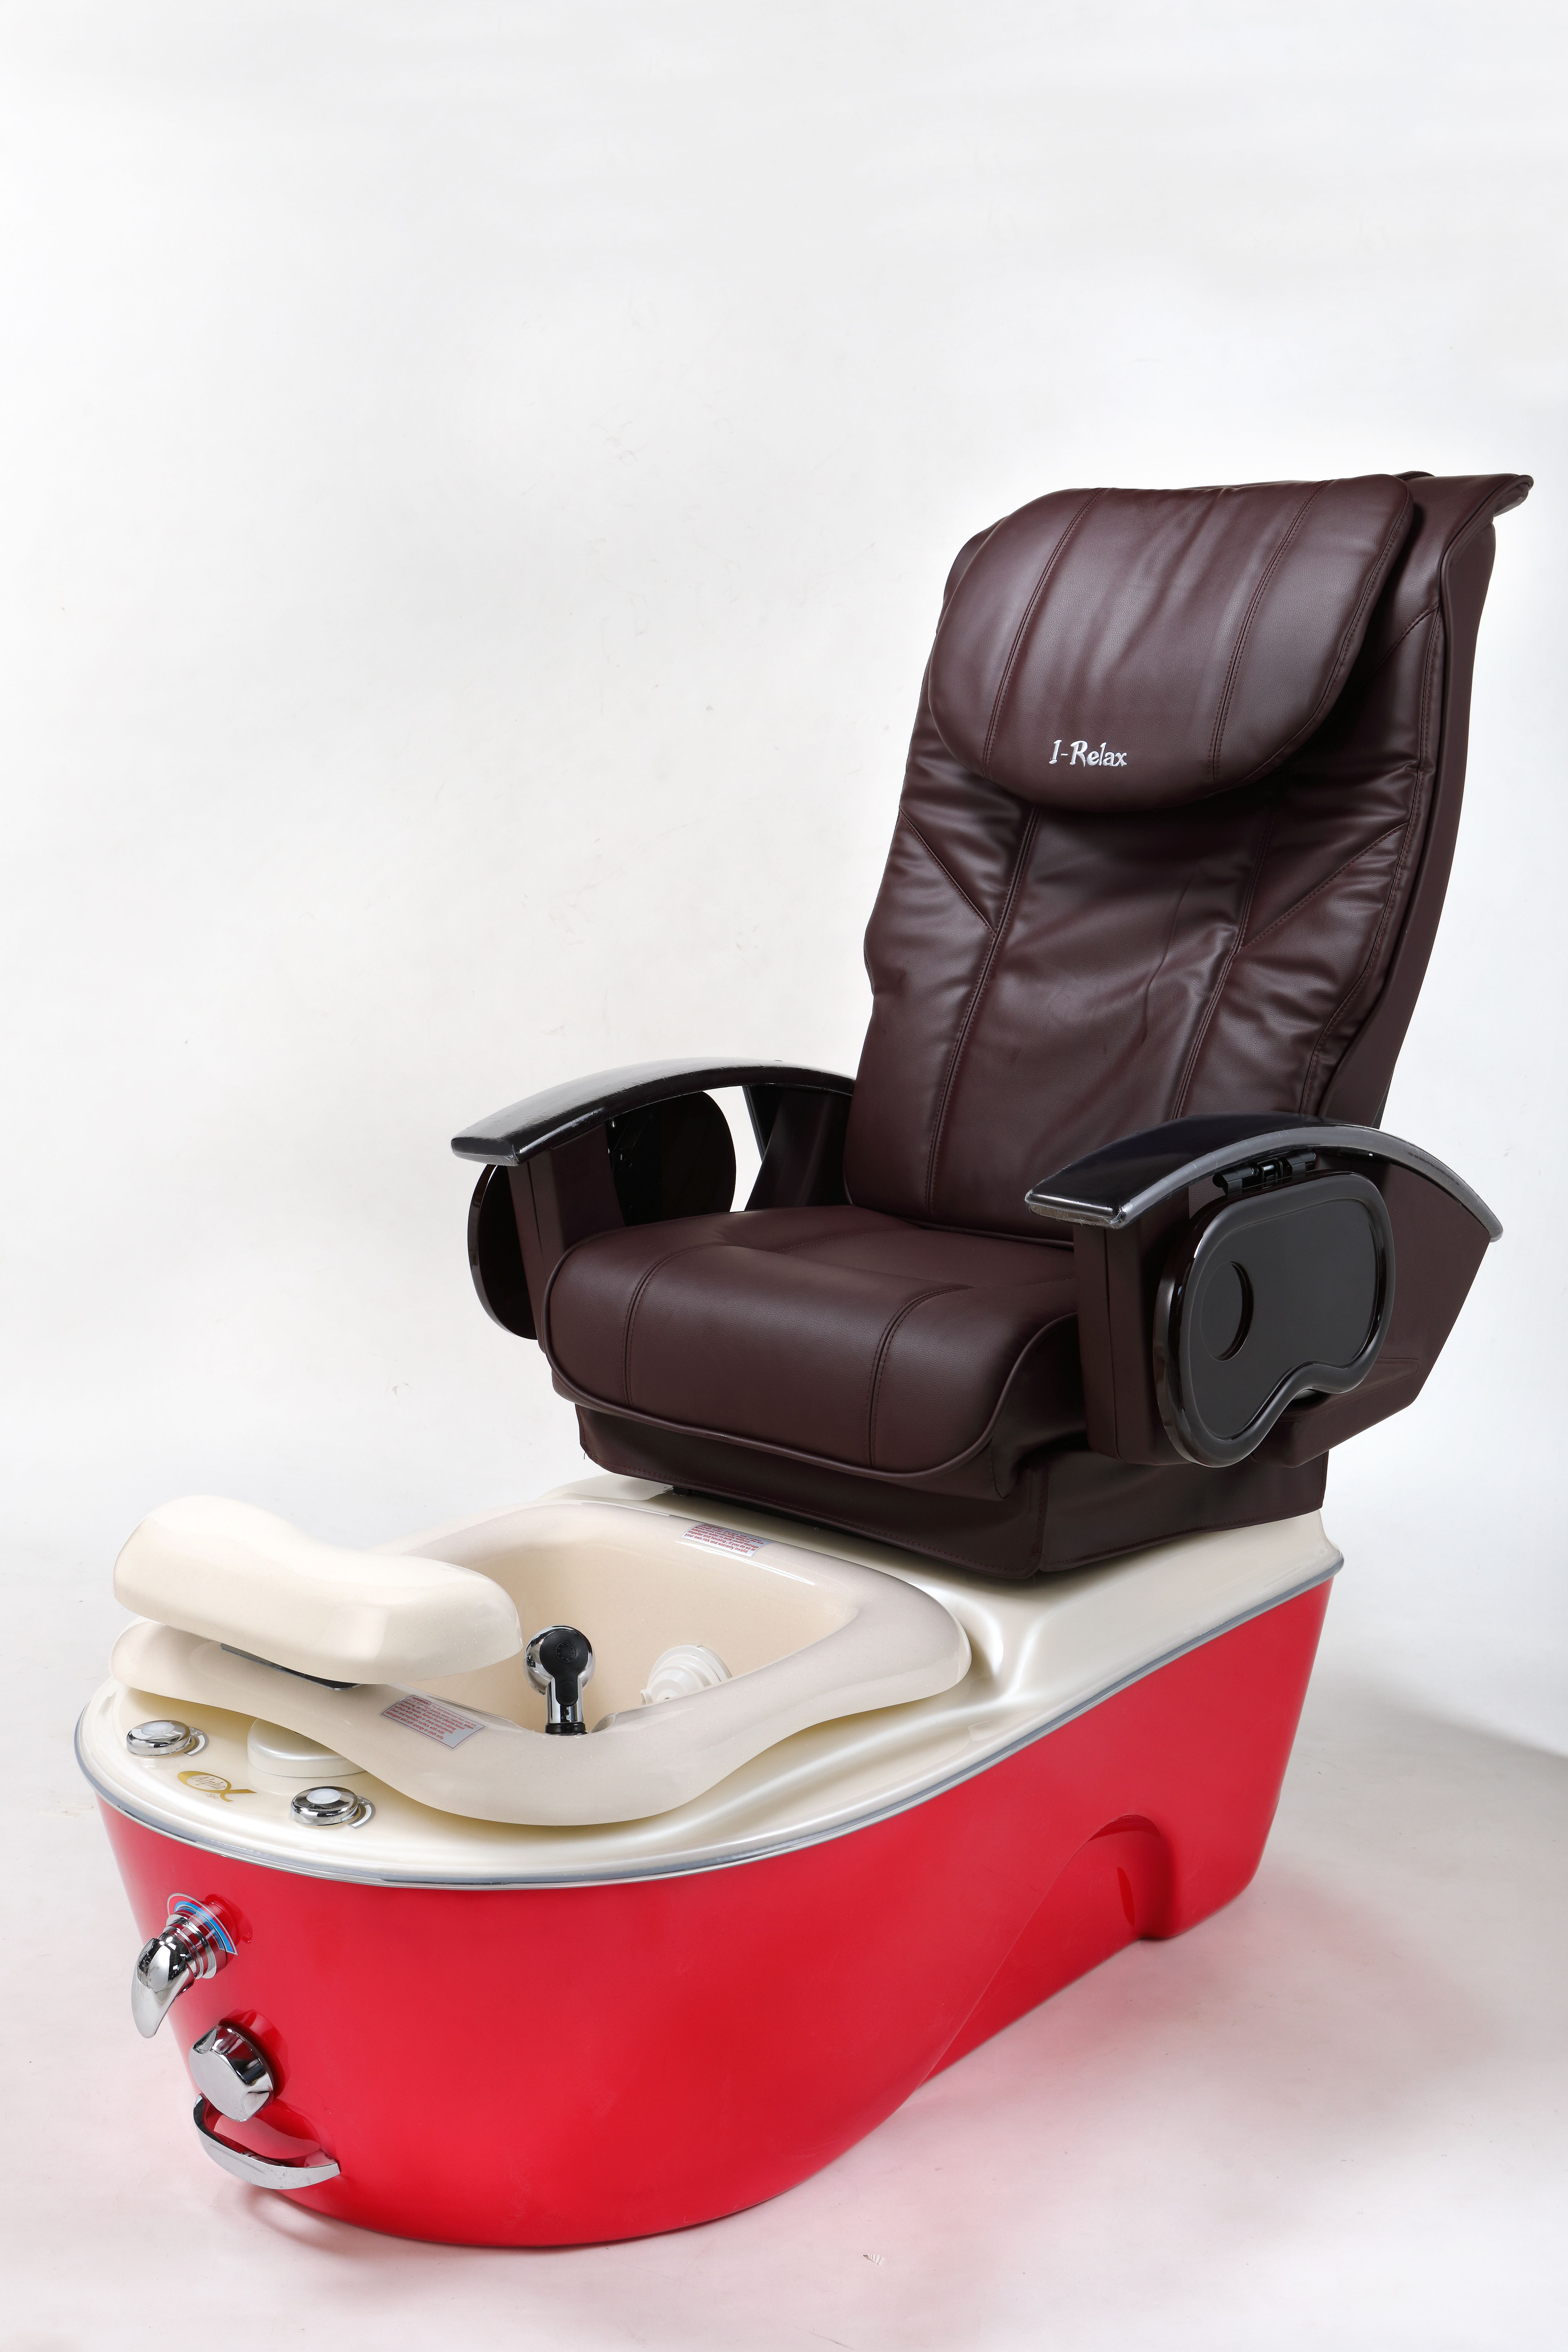 Irelax Lunula Spa Pedicure Chair Vnz Nail And Beauty